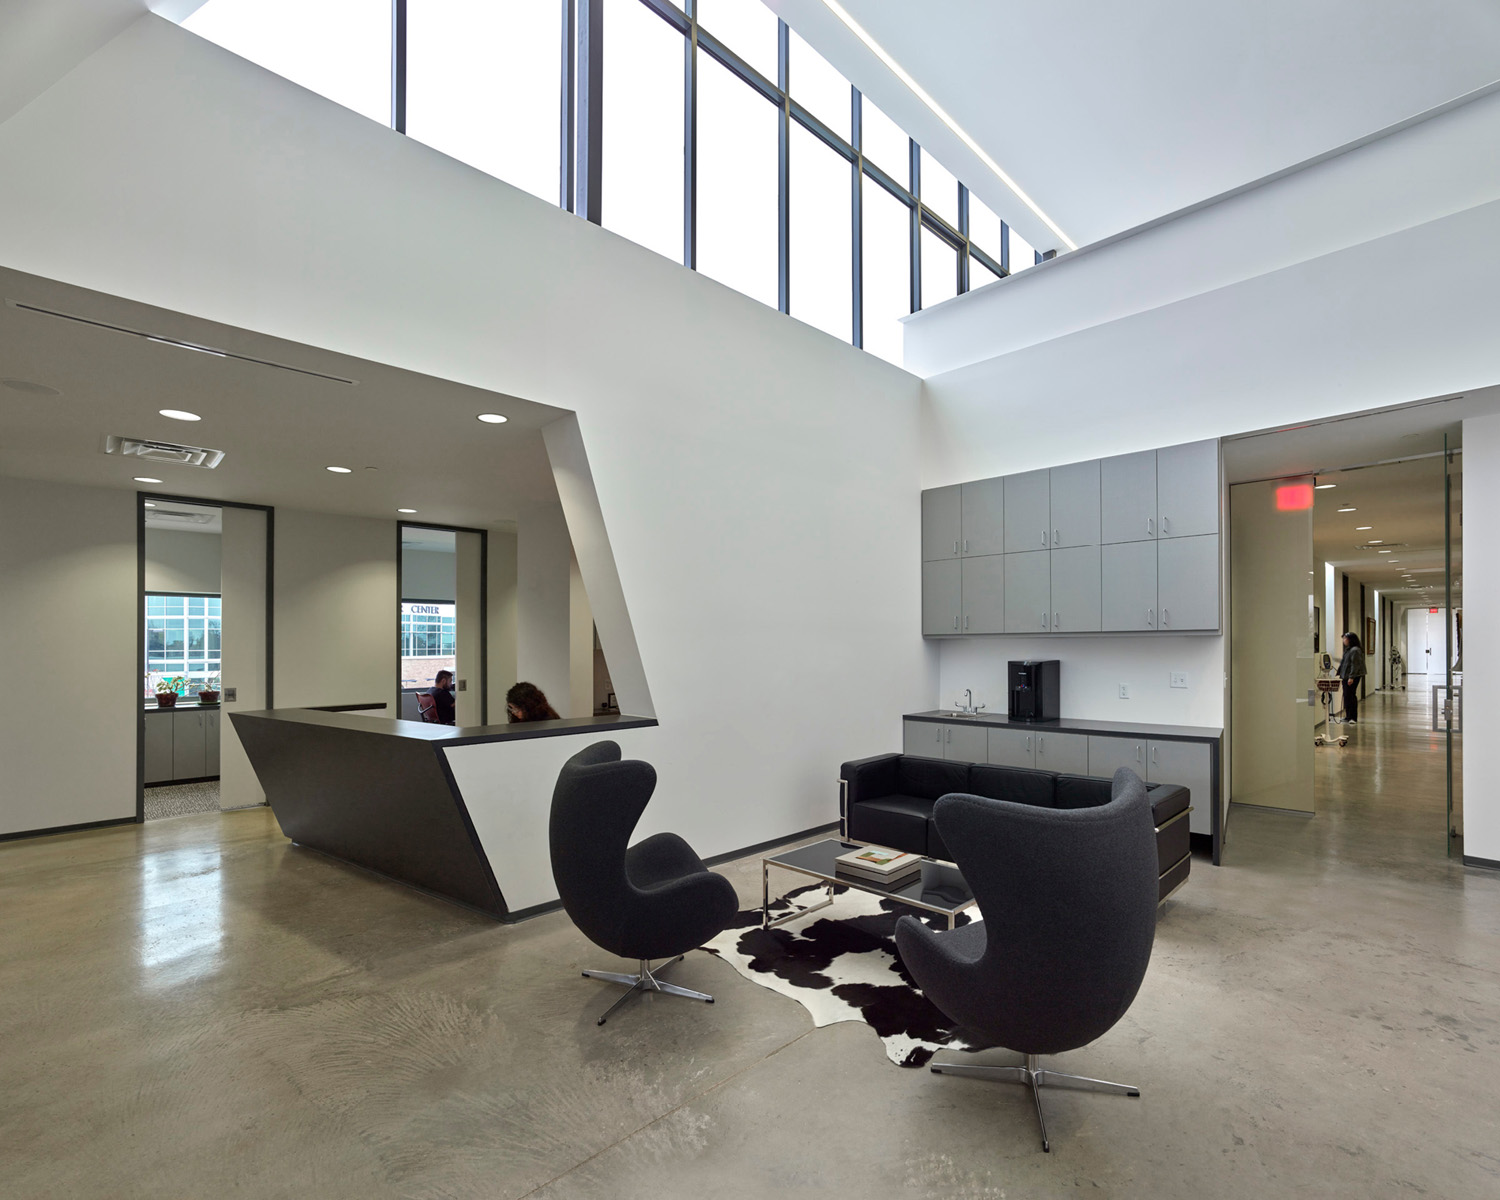 Double height Flex Space in administrative area; south clinic corridor beyond and mezzanine above